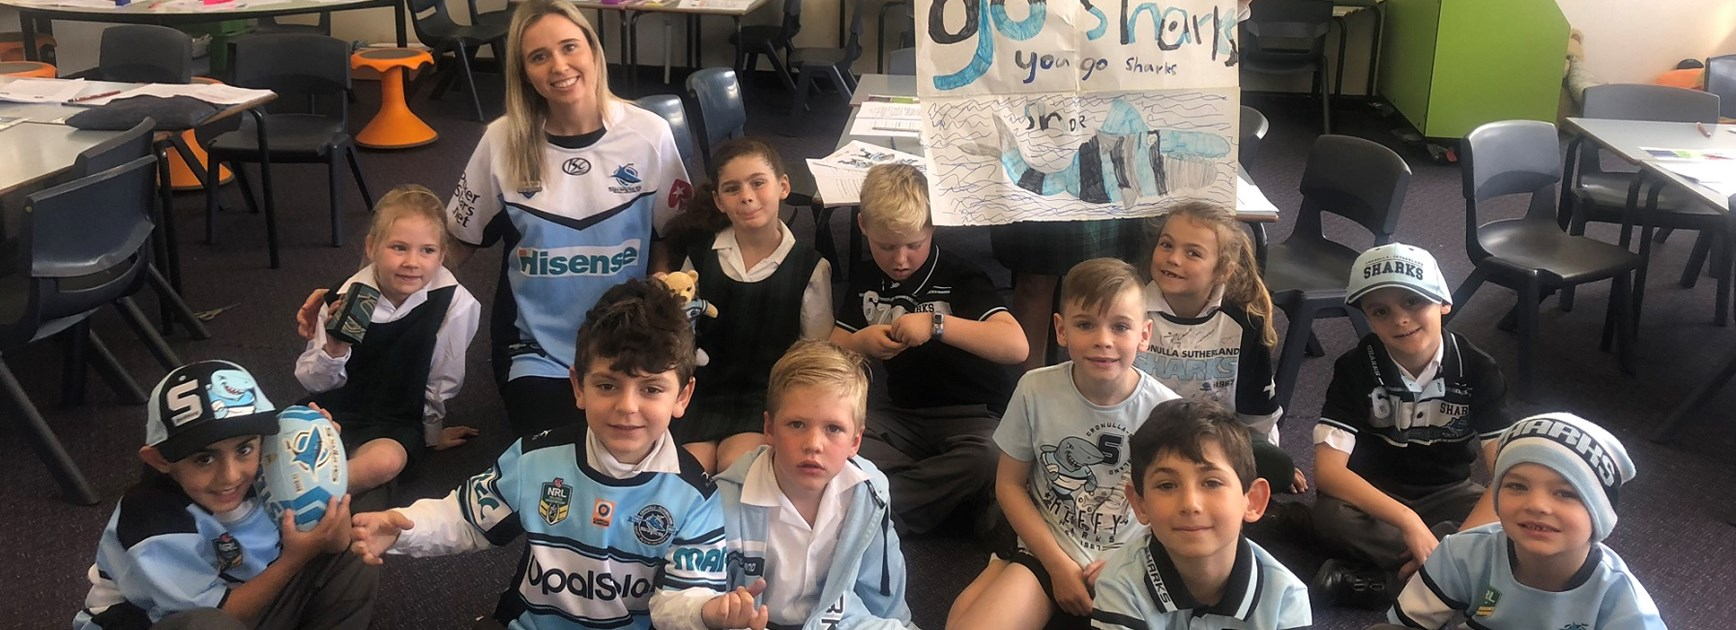 Sylvania Heights supporting the Sharks